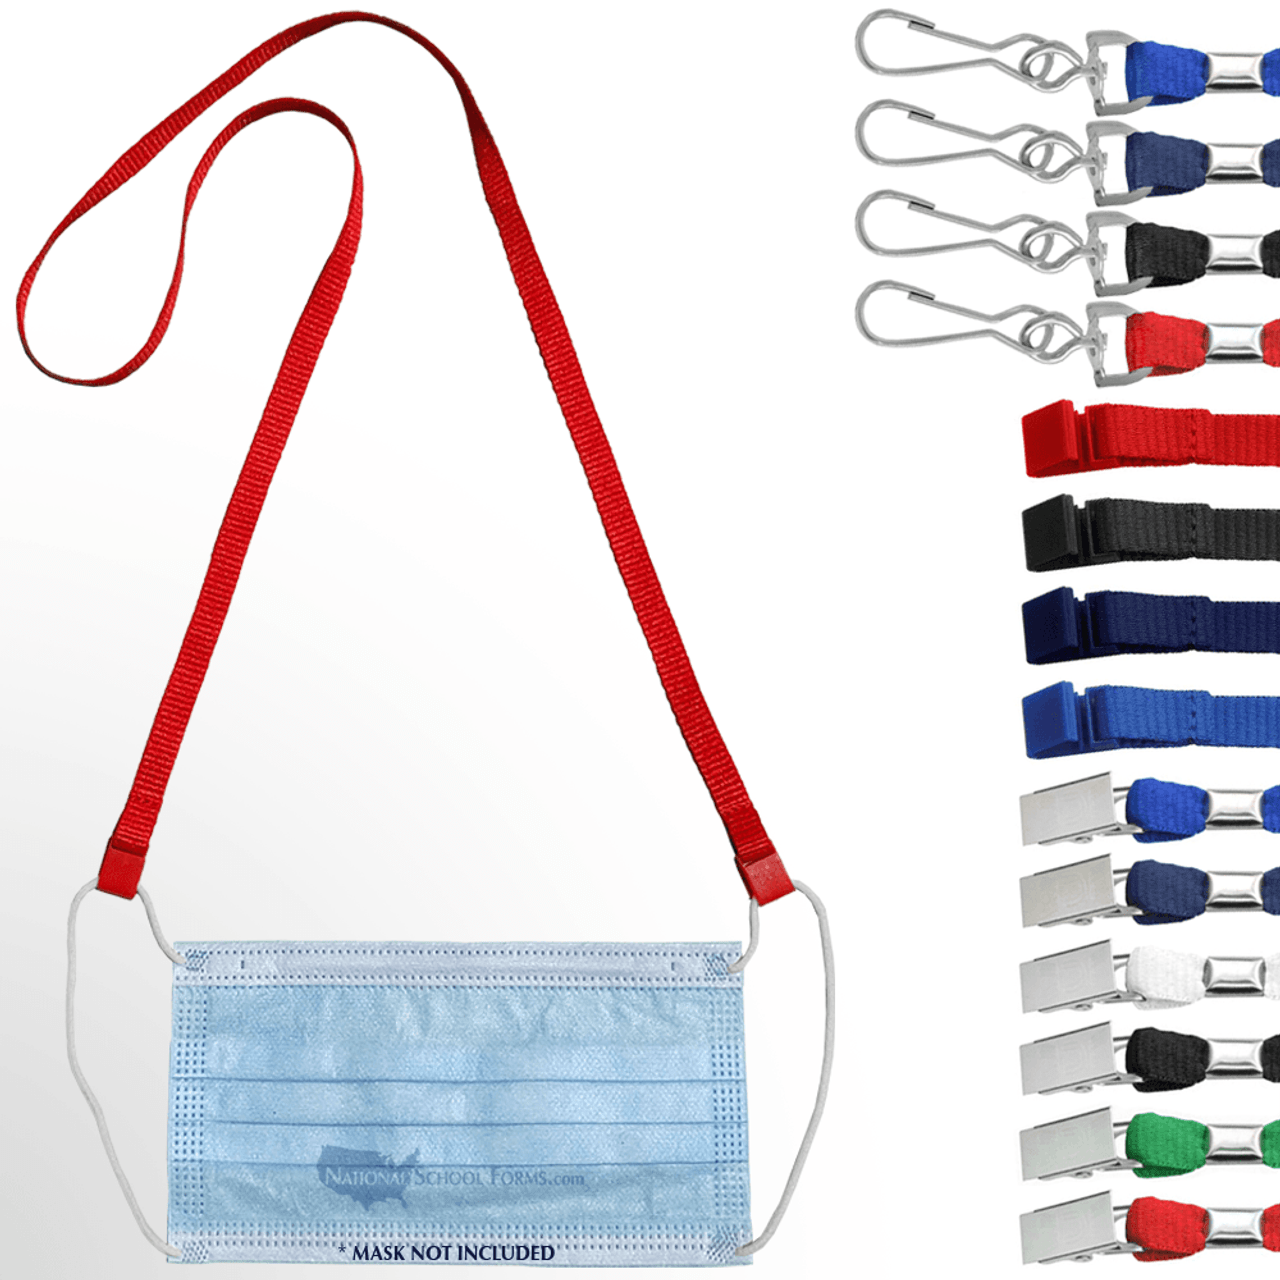 Open Ended Mask Lanyards with assortment of Lanyard fittings